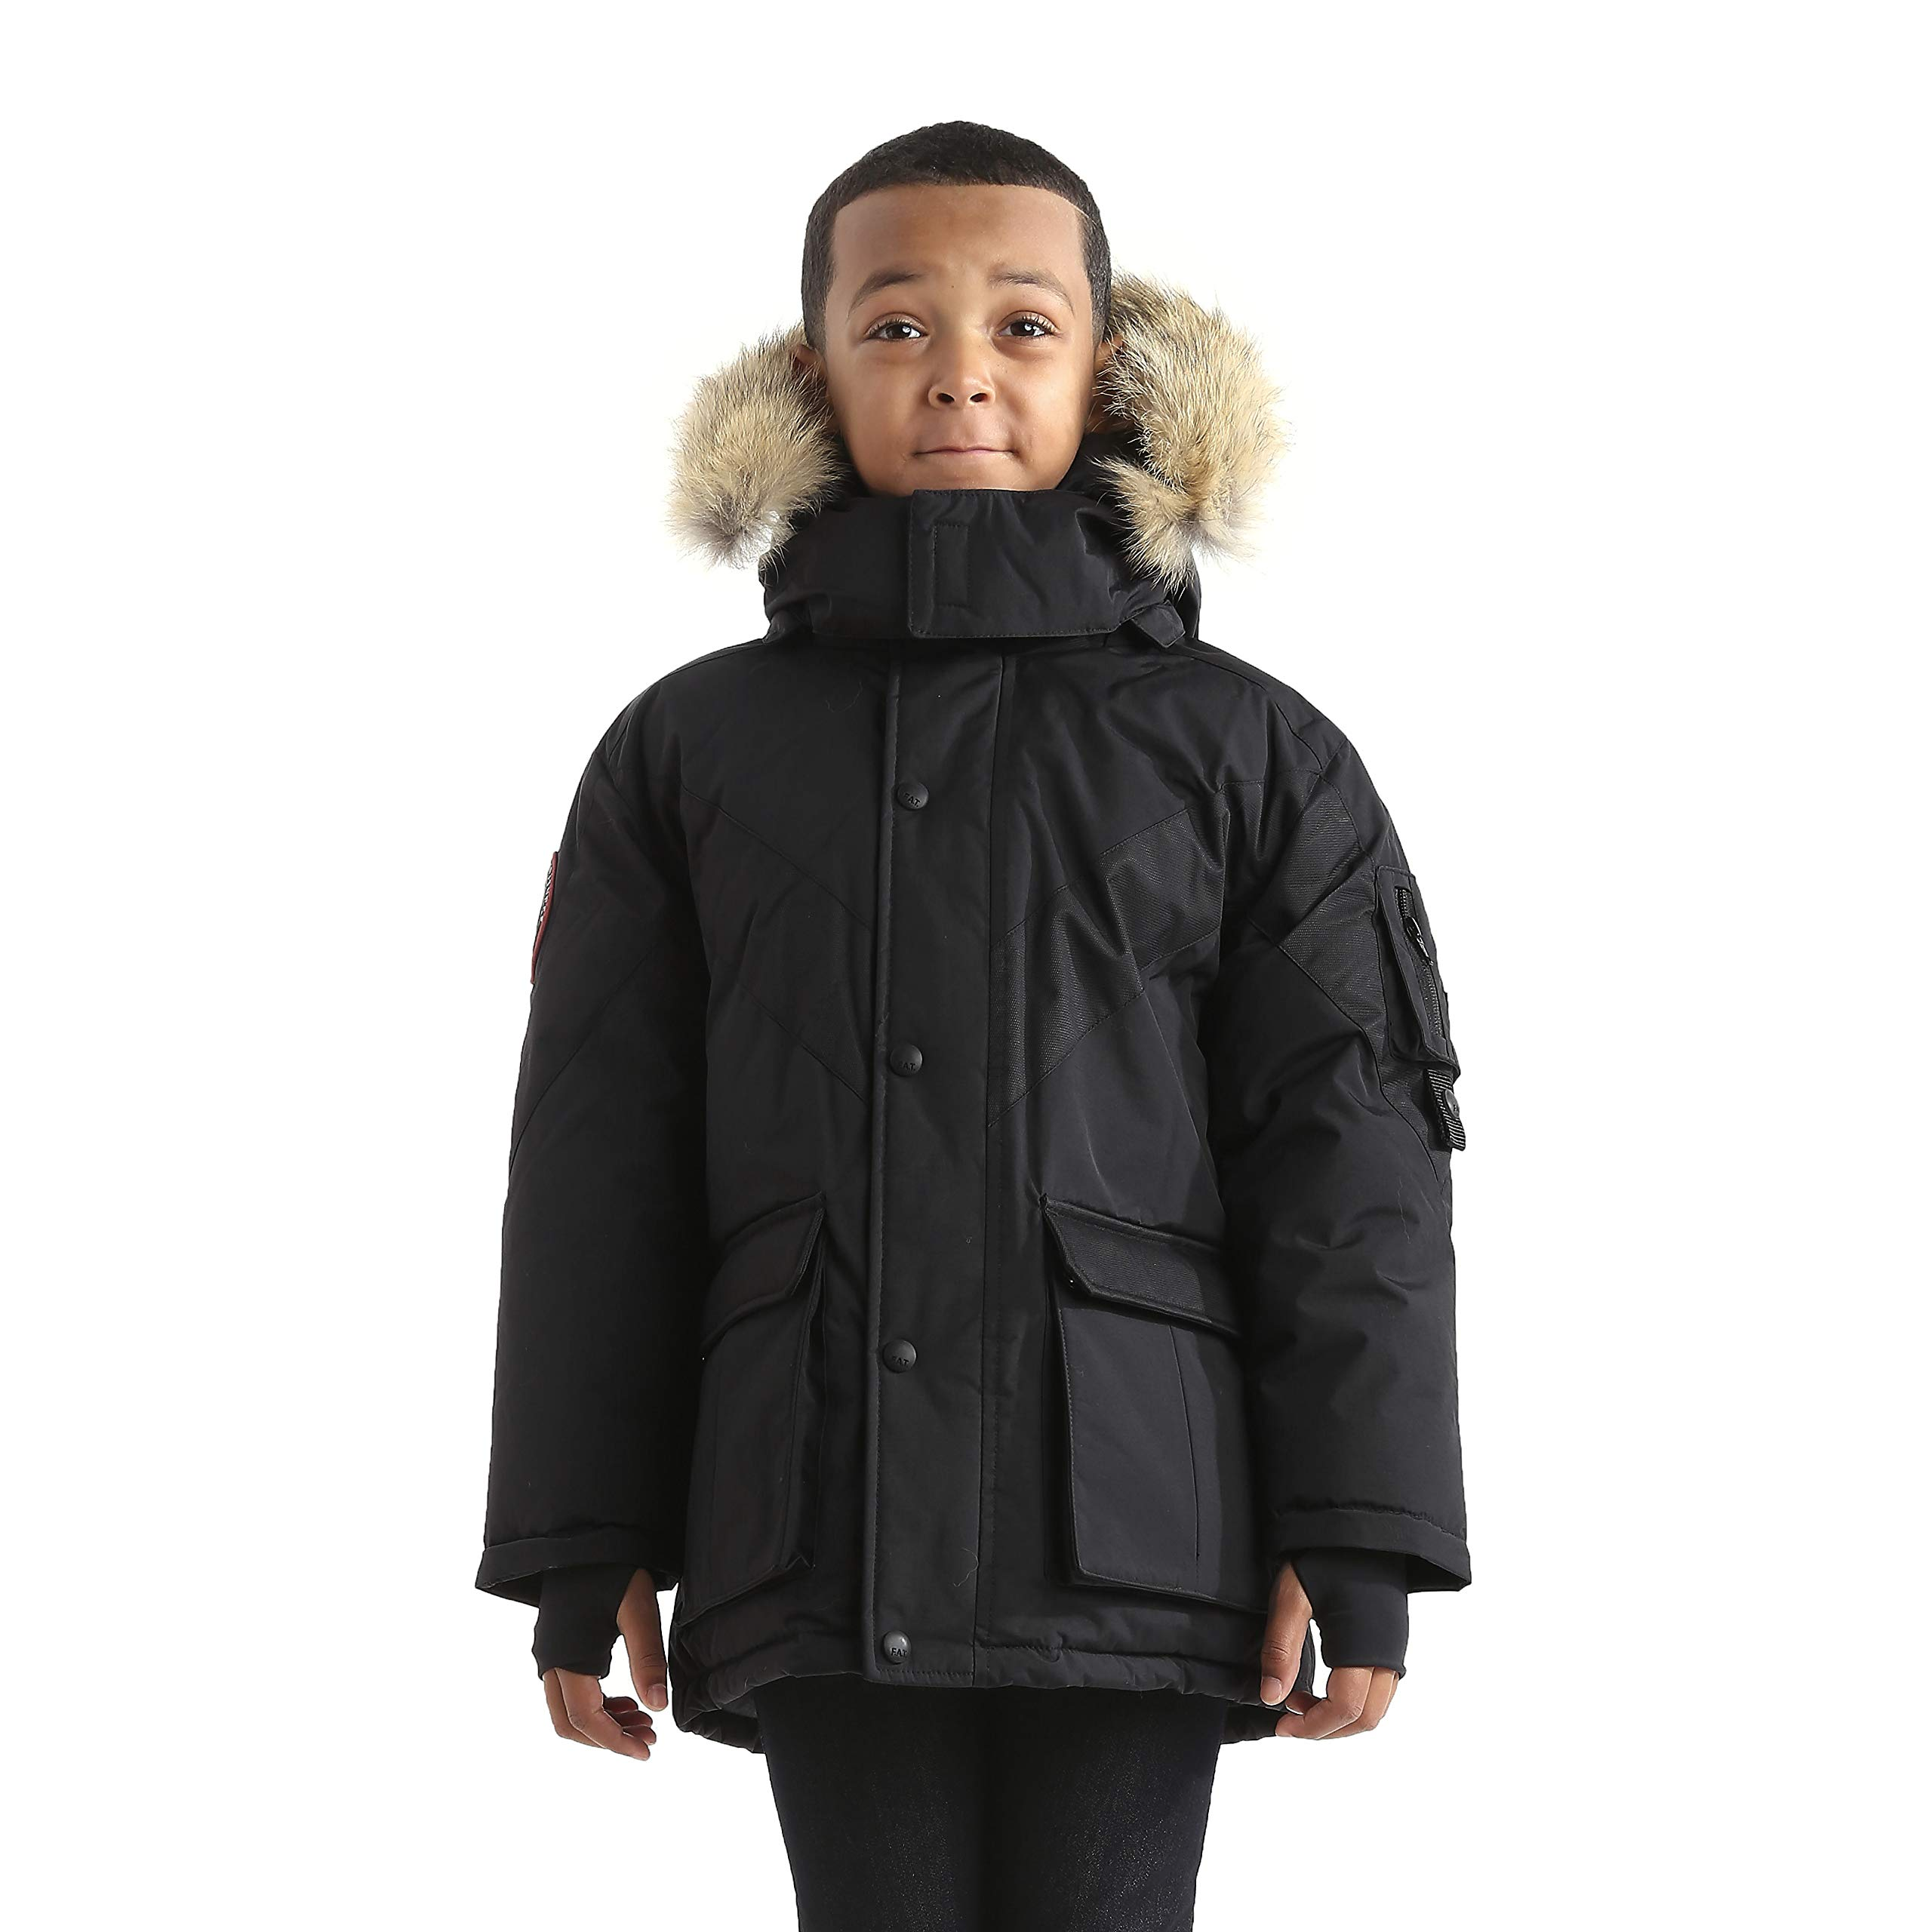 Triple F.A.T. Goose Hesselberg Boys Hooded Goose Down Arctic Parka with Real Coyote Fur (7, Black) by Triple F.A.T. Goose (Image #1)